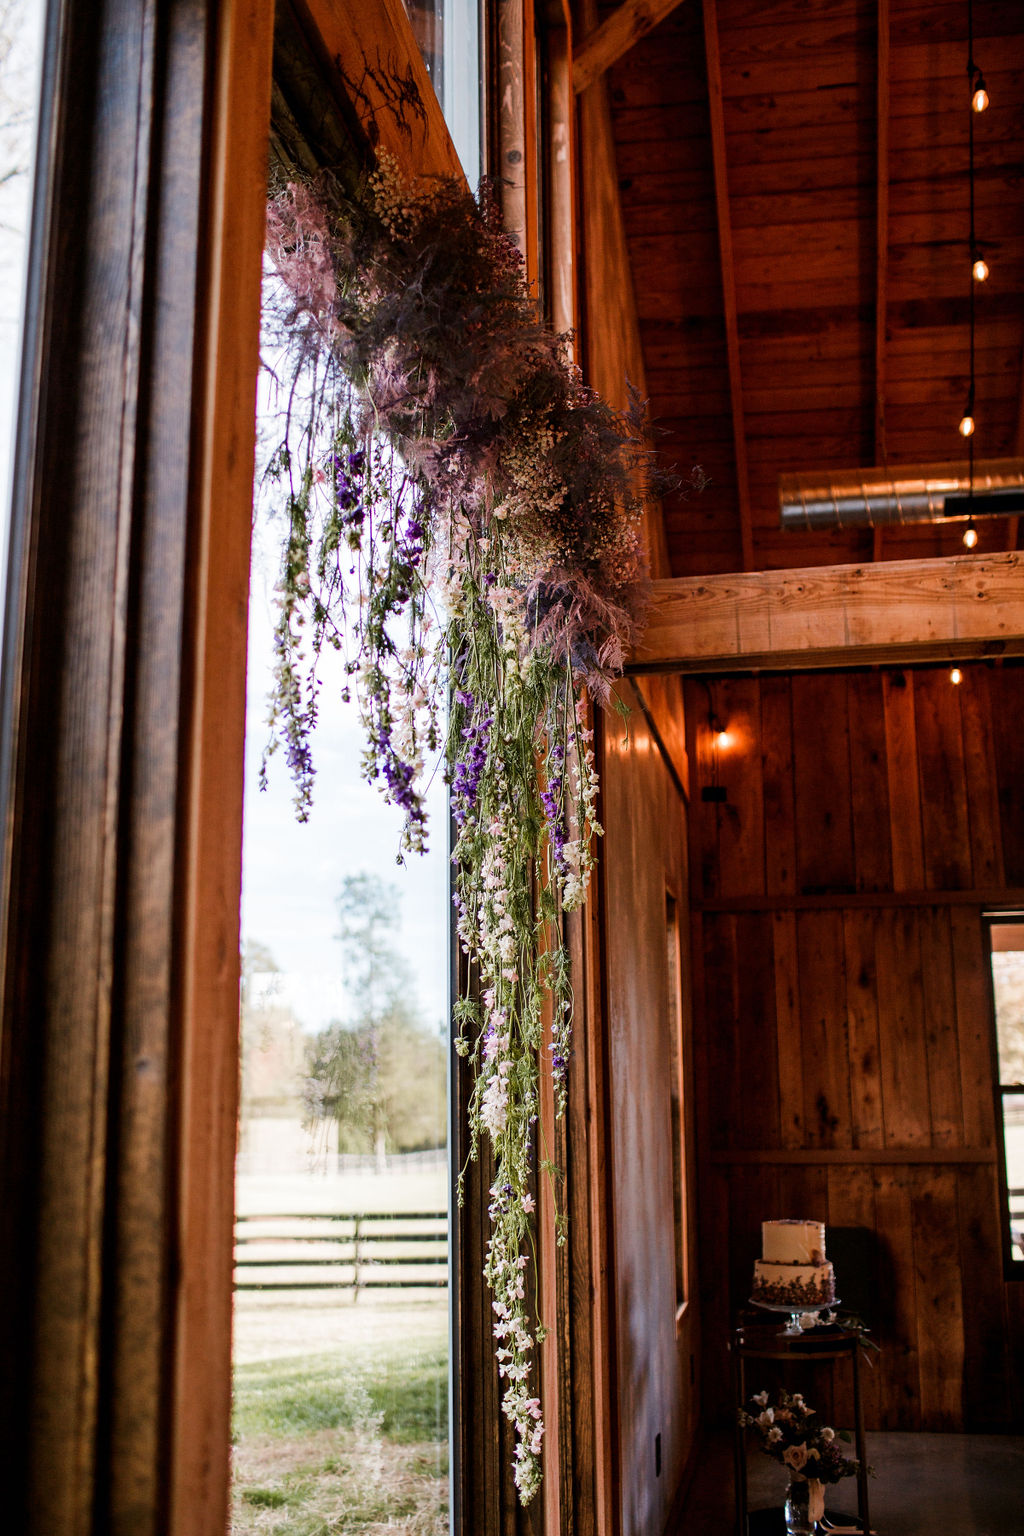 Memory of Elegance wedding flowers: Moody Spring Styled Shoot and Cedarmont Farm featured on Nashville Bride Guide